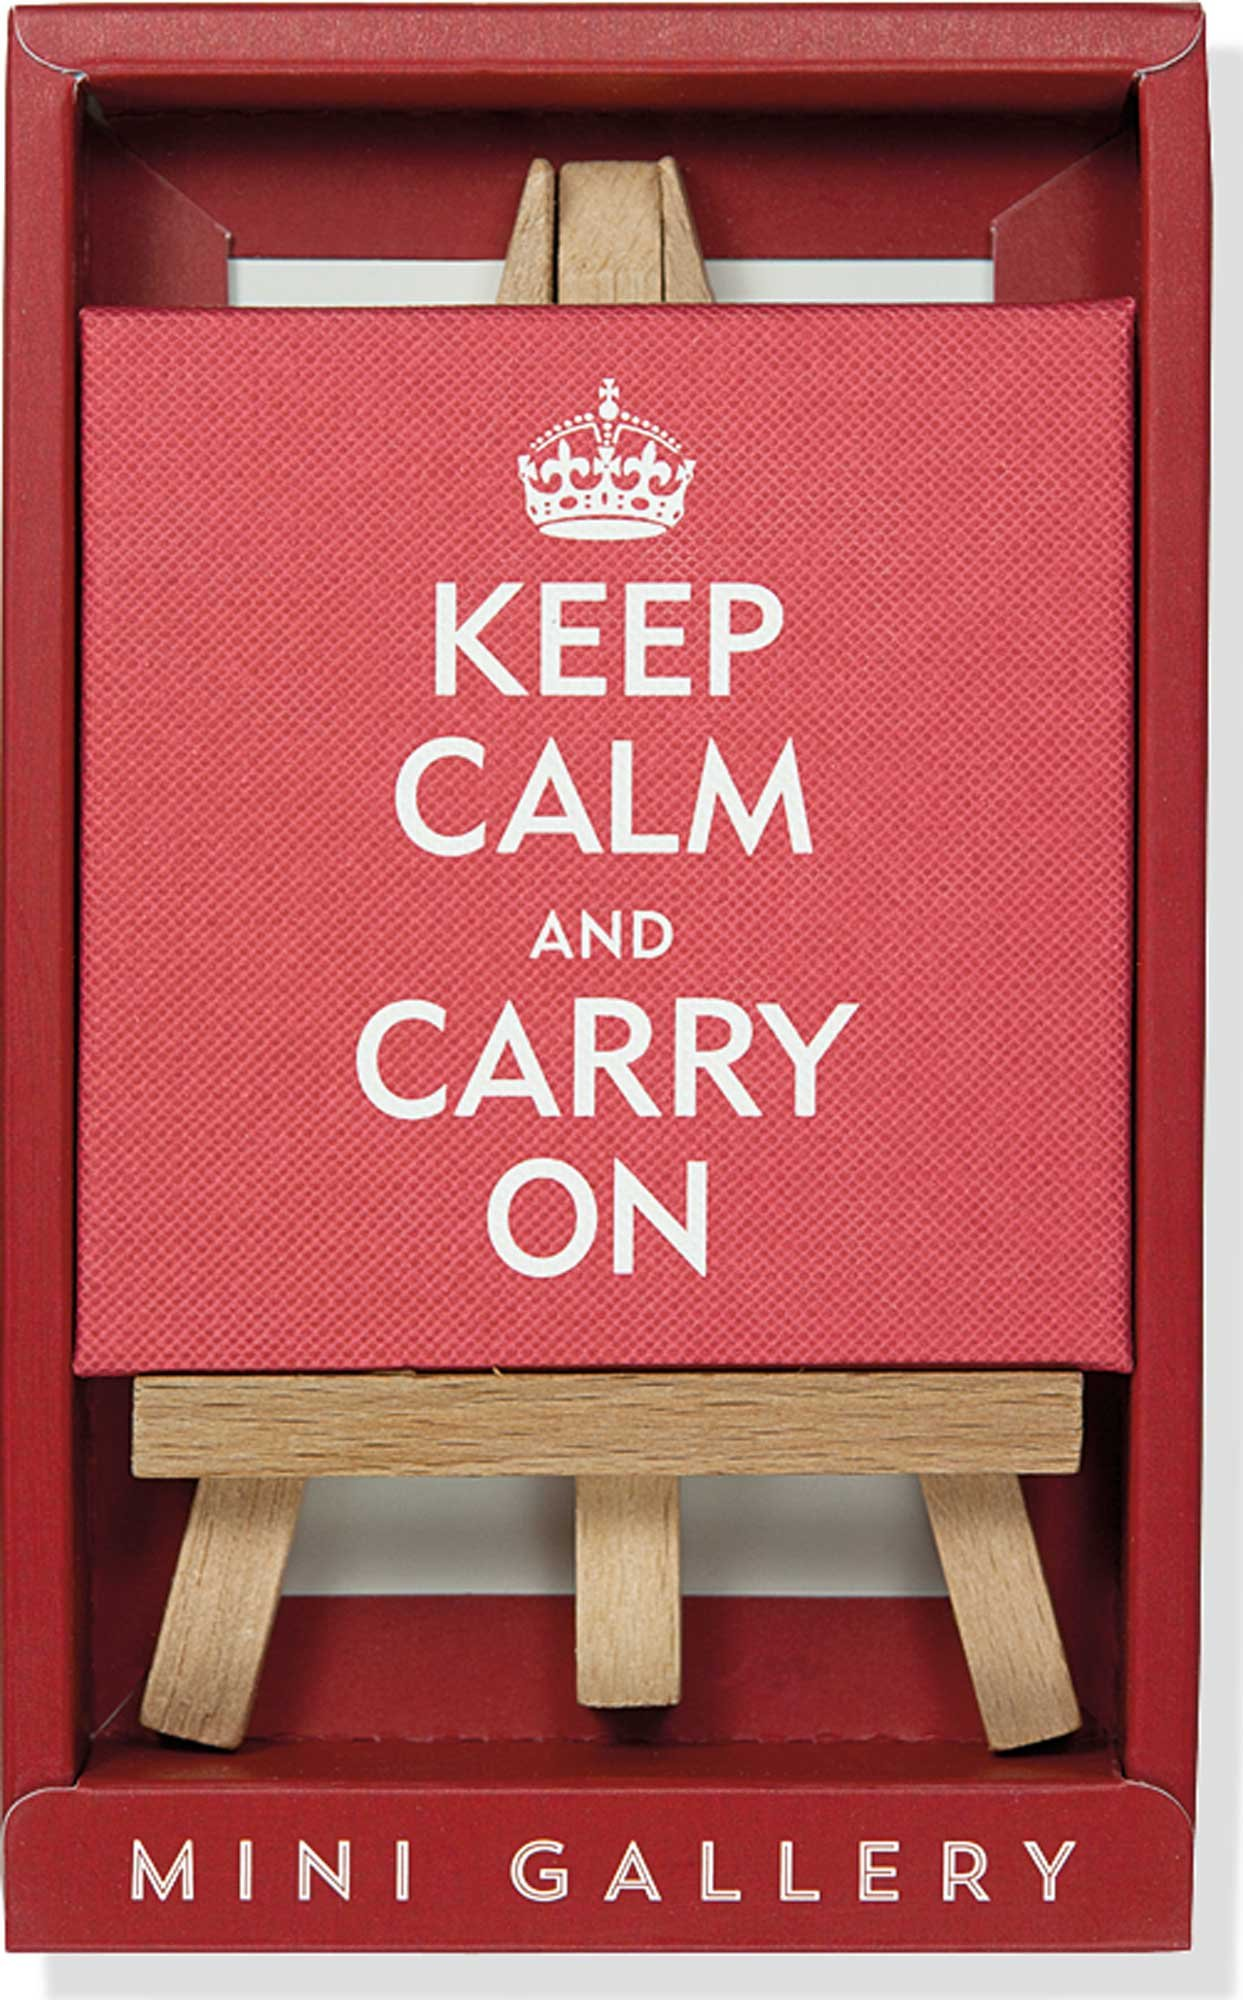 Keep Carry Gallery artwork easel product image